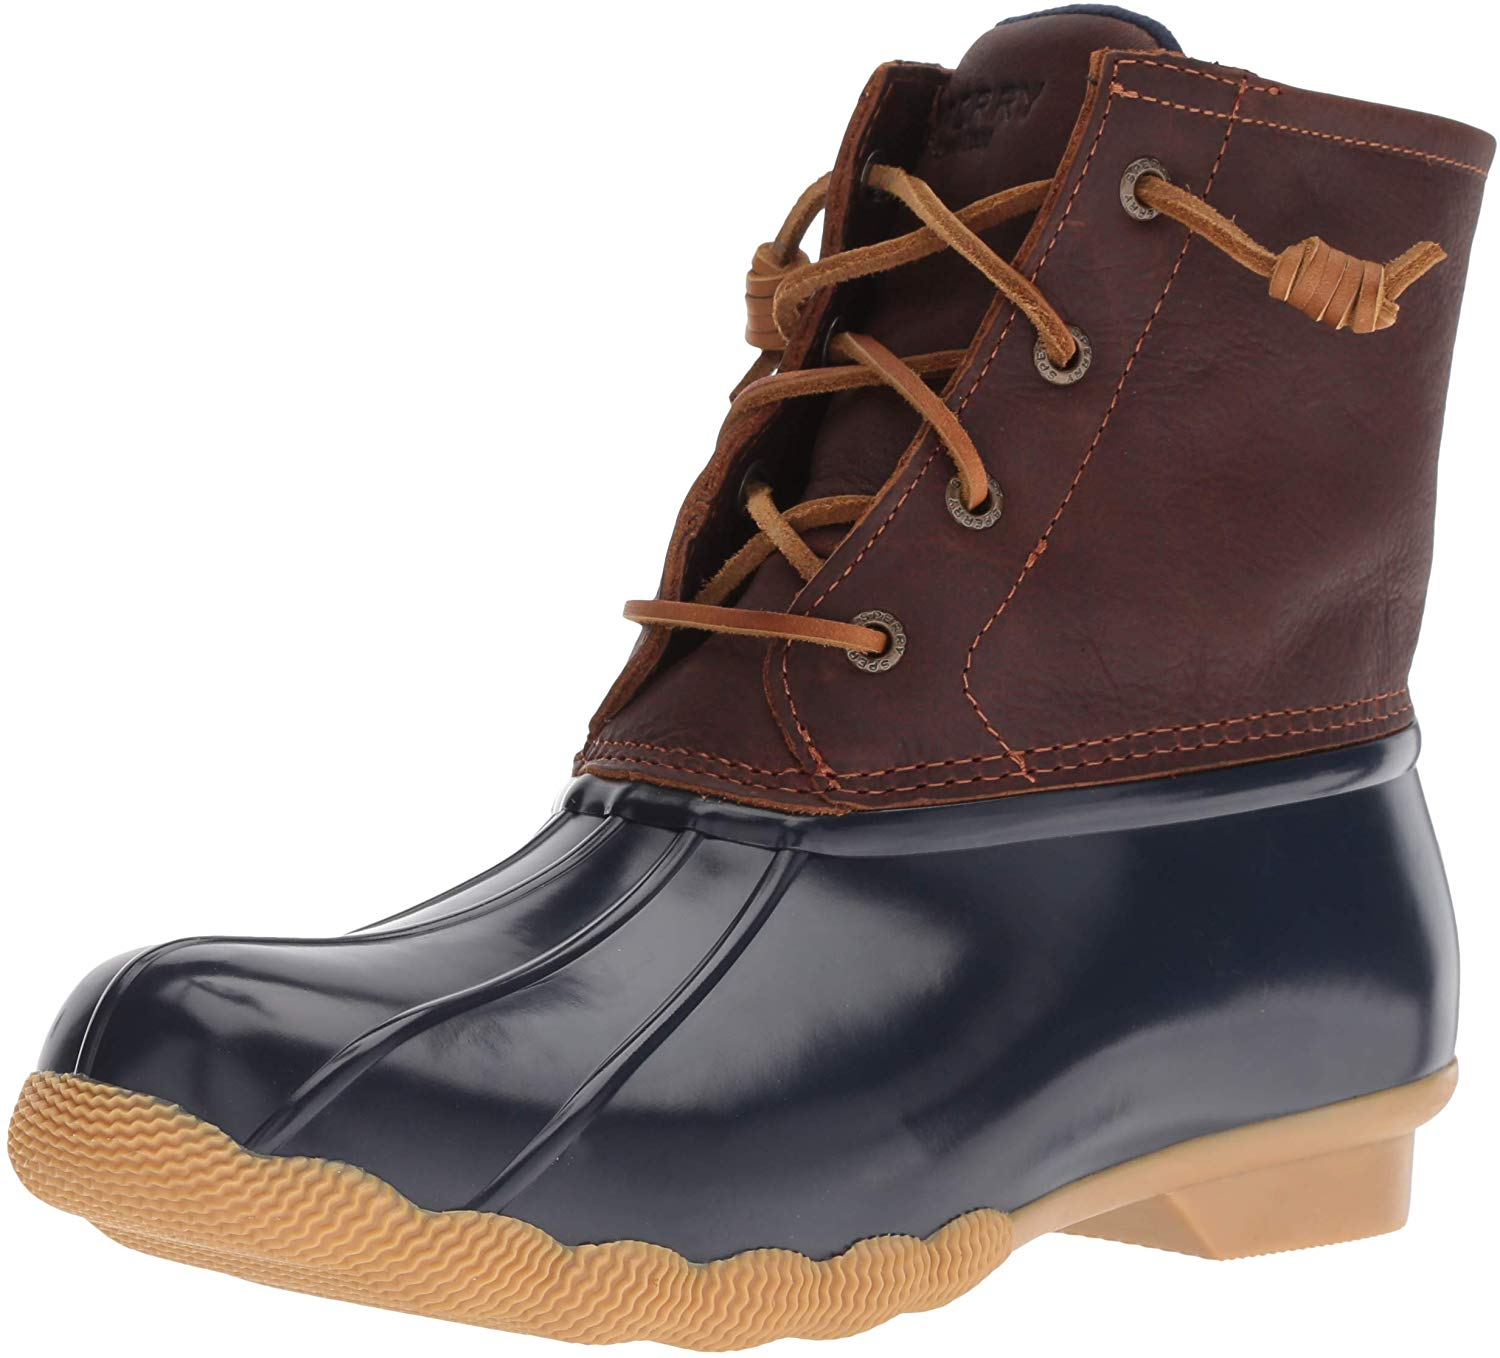 Review of Sperry Women's Saltwater Rain Boot